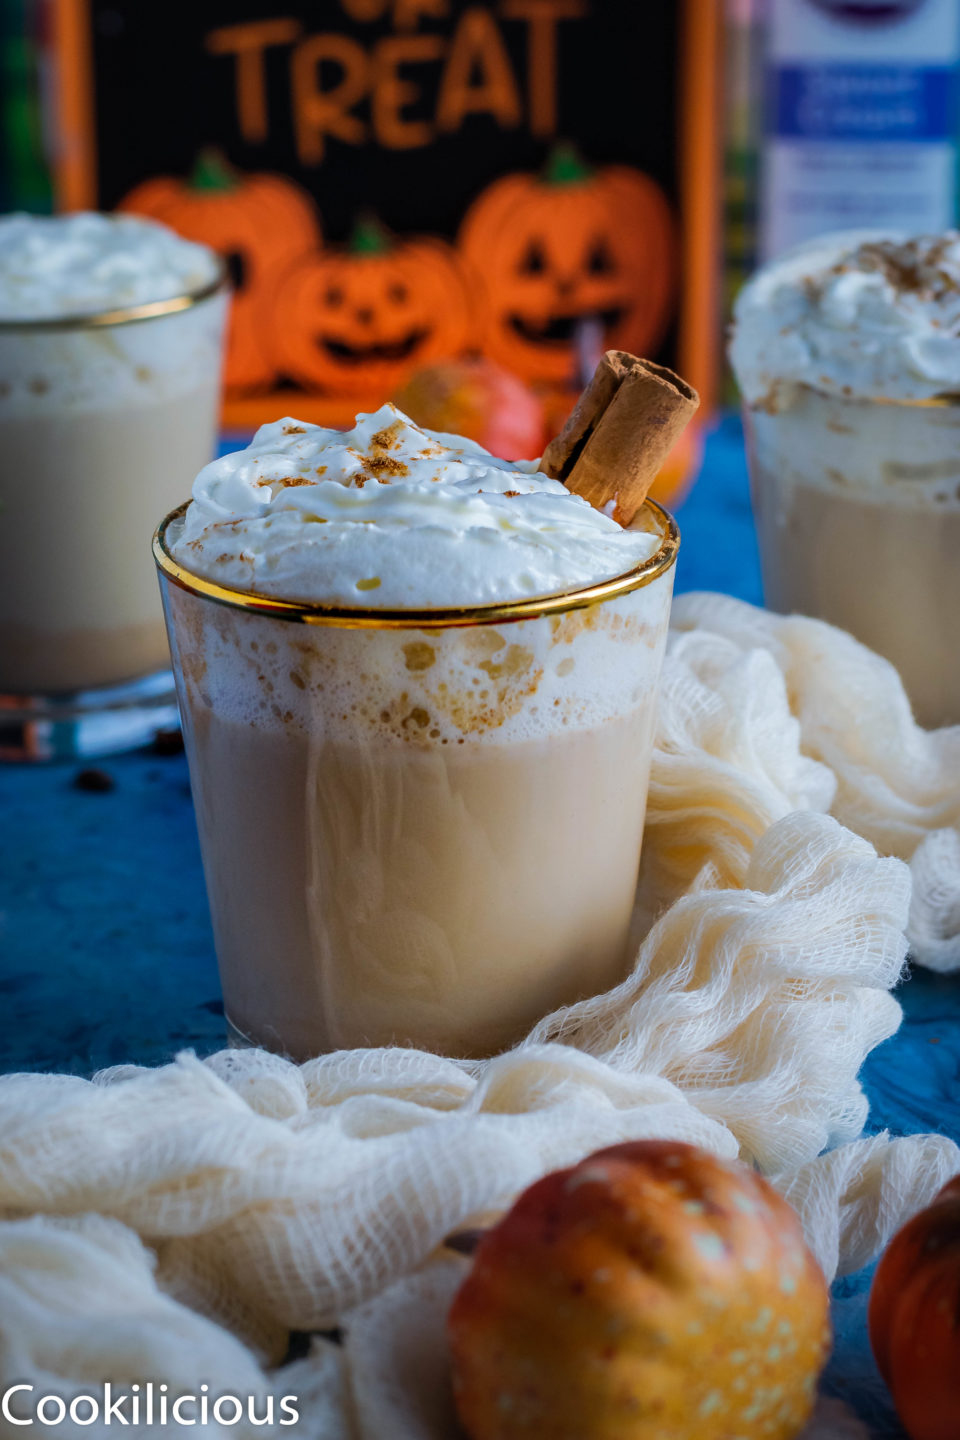 Spiced Coffee & Pumpkin Latte in a glass